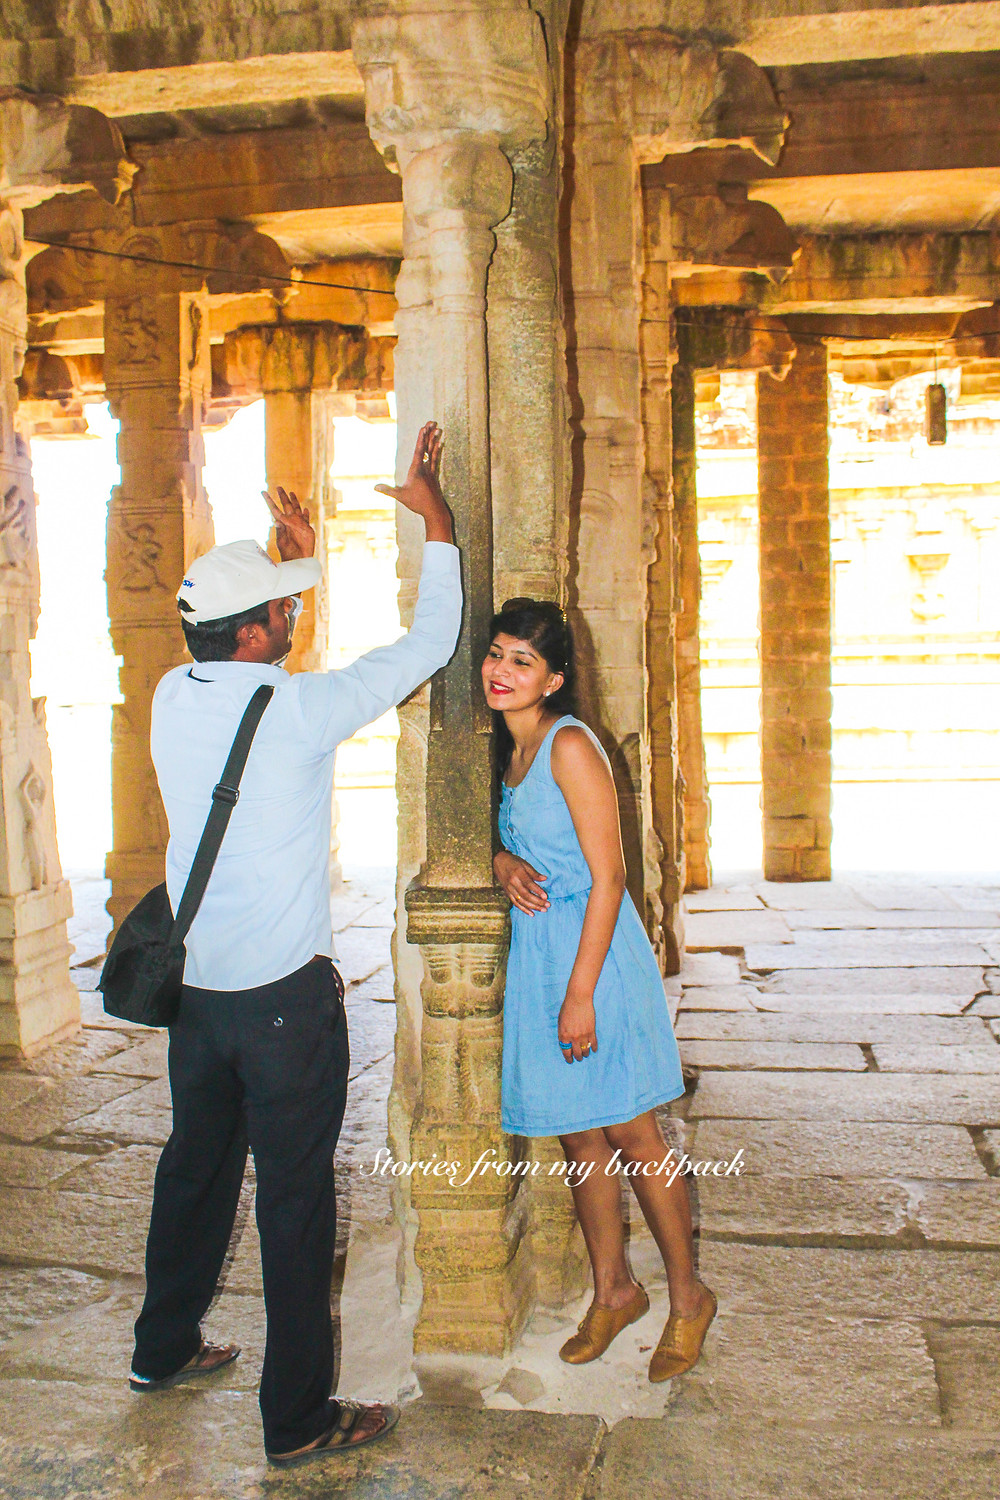 hampi, musical pillars of Hampi, best temples in Hampi, Hampi tour, things to do in Hampi, Vijaya Vittala temple Hampi